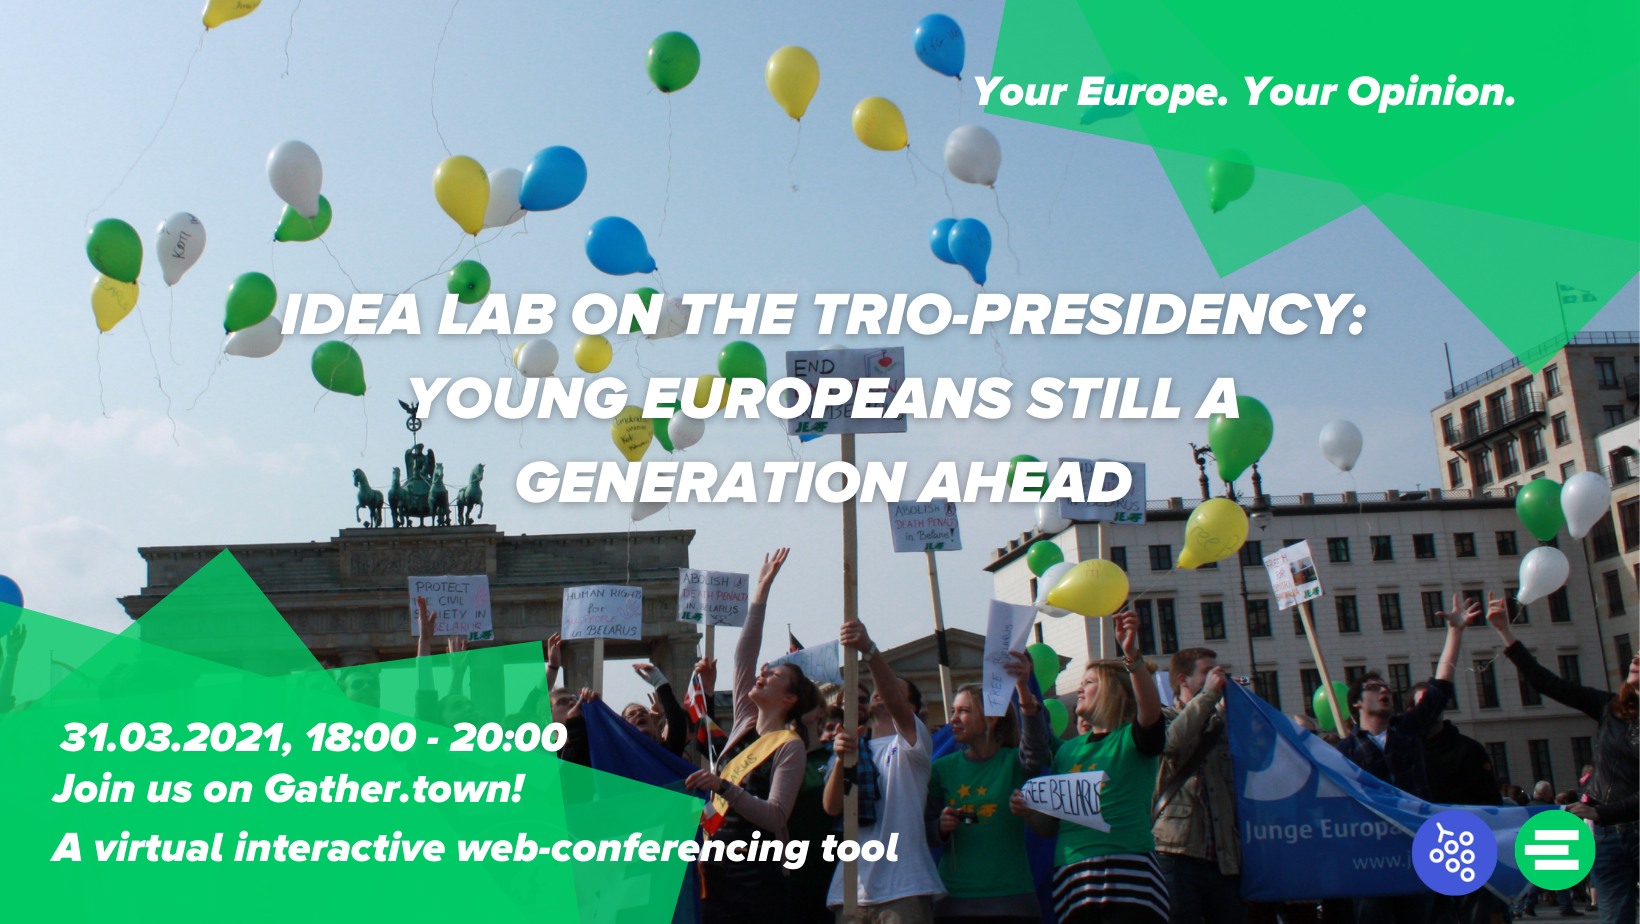 Idea lab on the trio-presidency: Young Europeans still a generation ahead